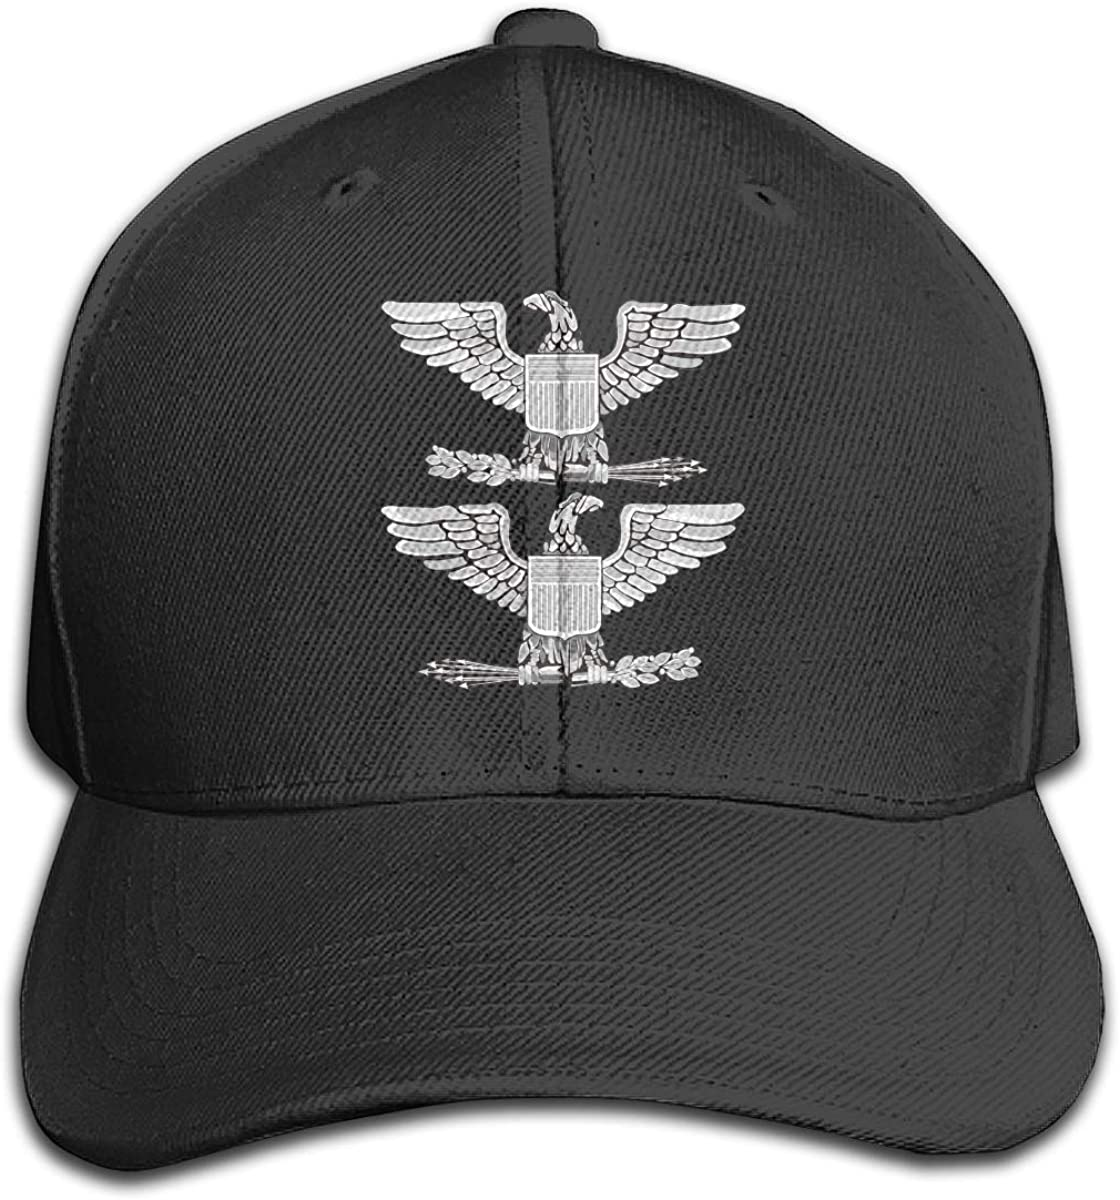 U.S.M.C O-6 Bird Colonel Officers Rank Vinyl Transfer Hat Mens Vintage Washed Personalized Hats Black